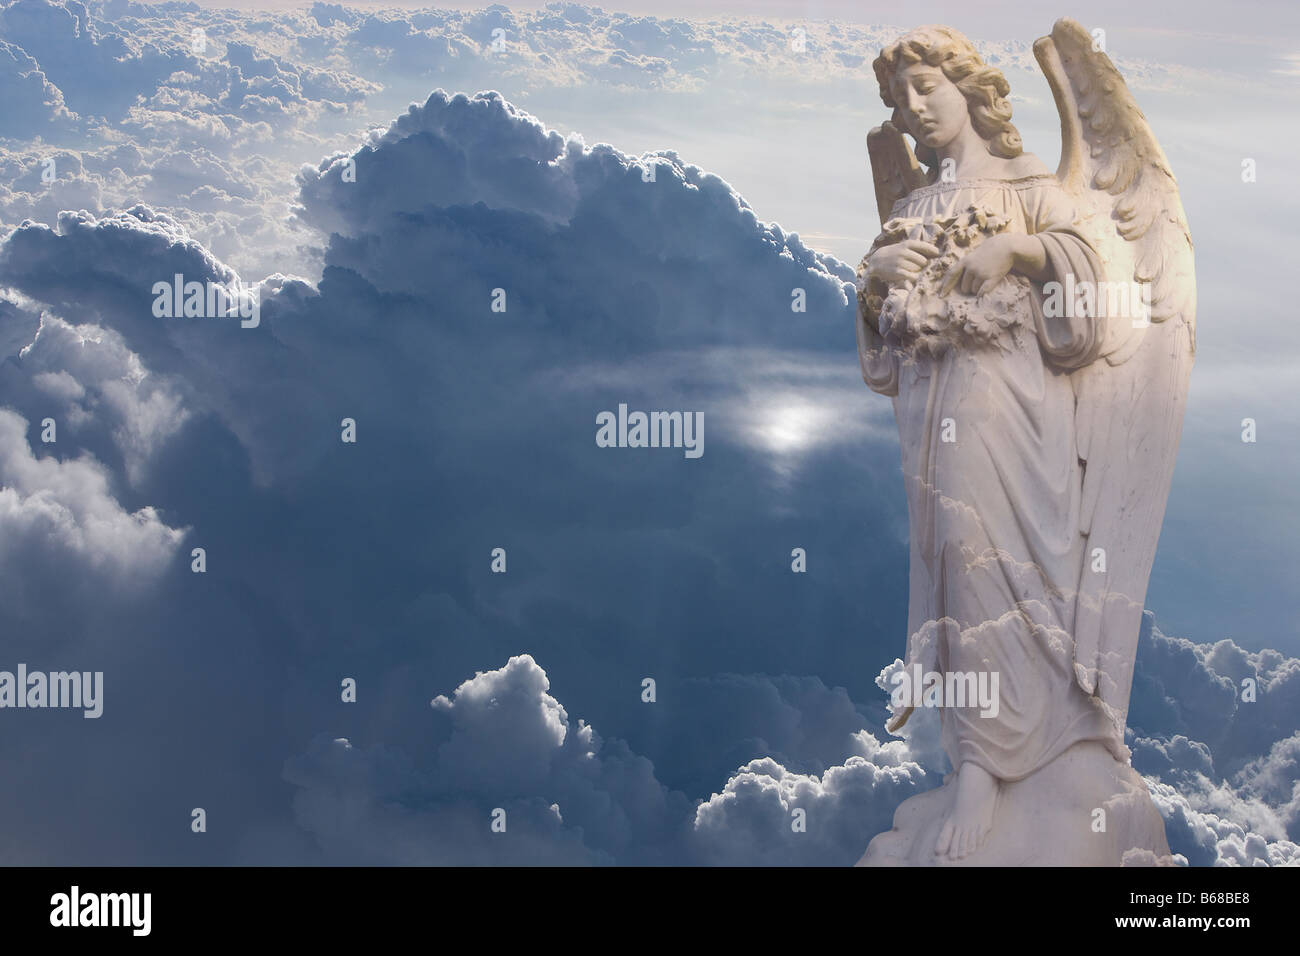 Statue de l'ange et photo aérienne de nuages Photo Stock